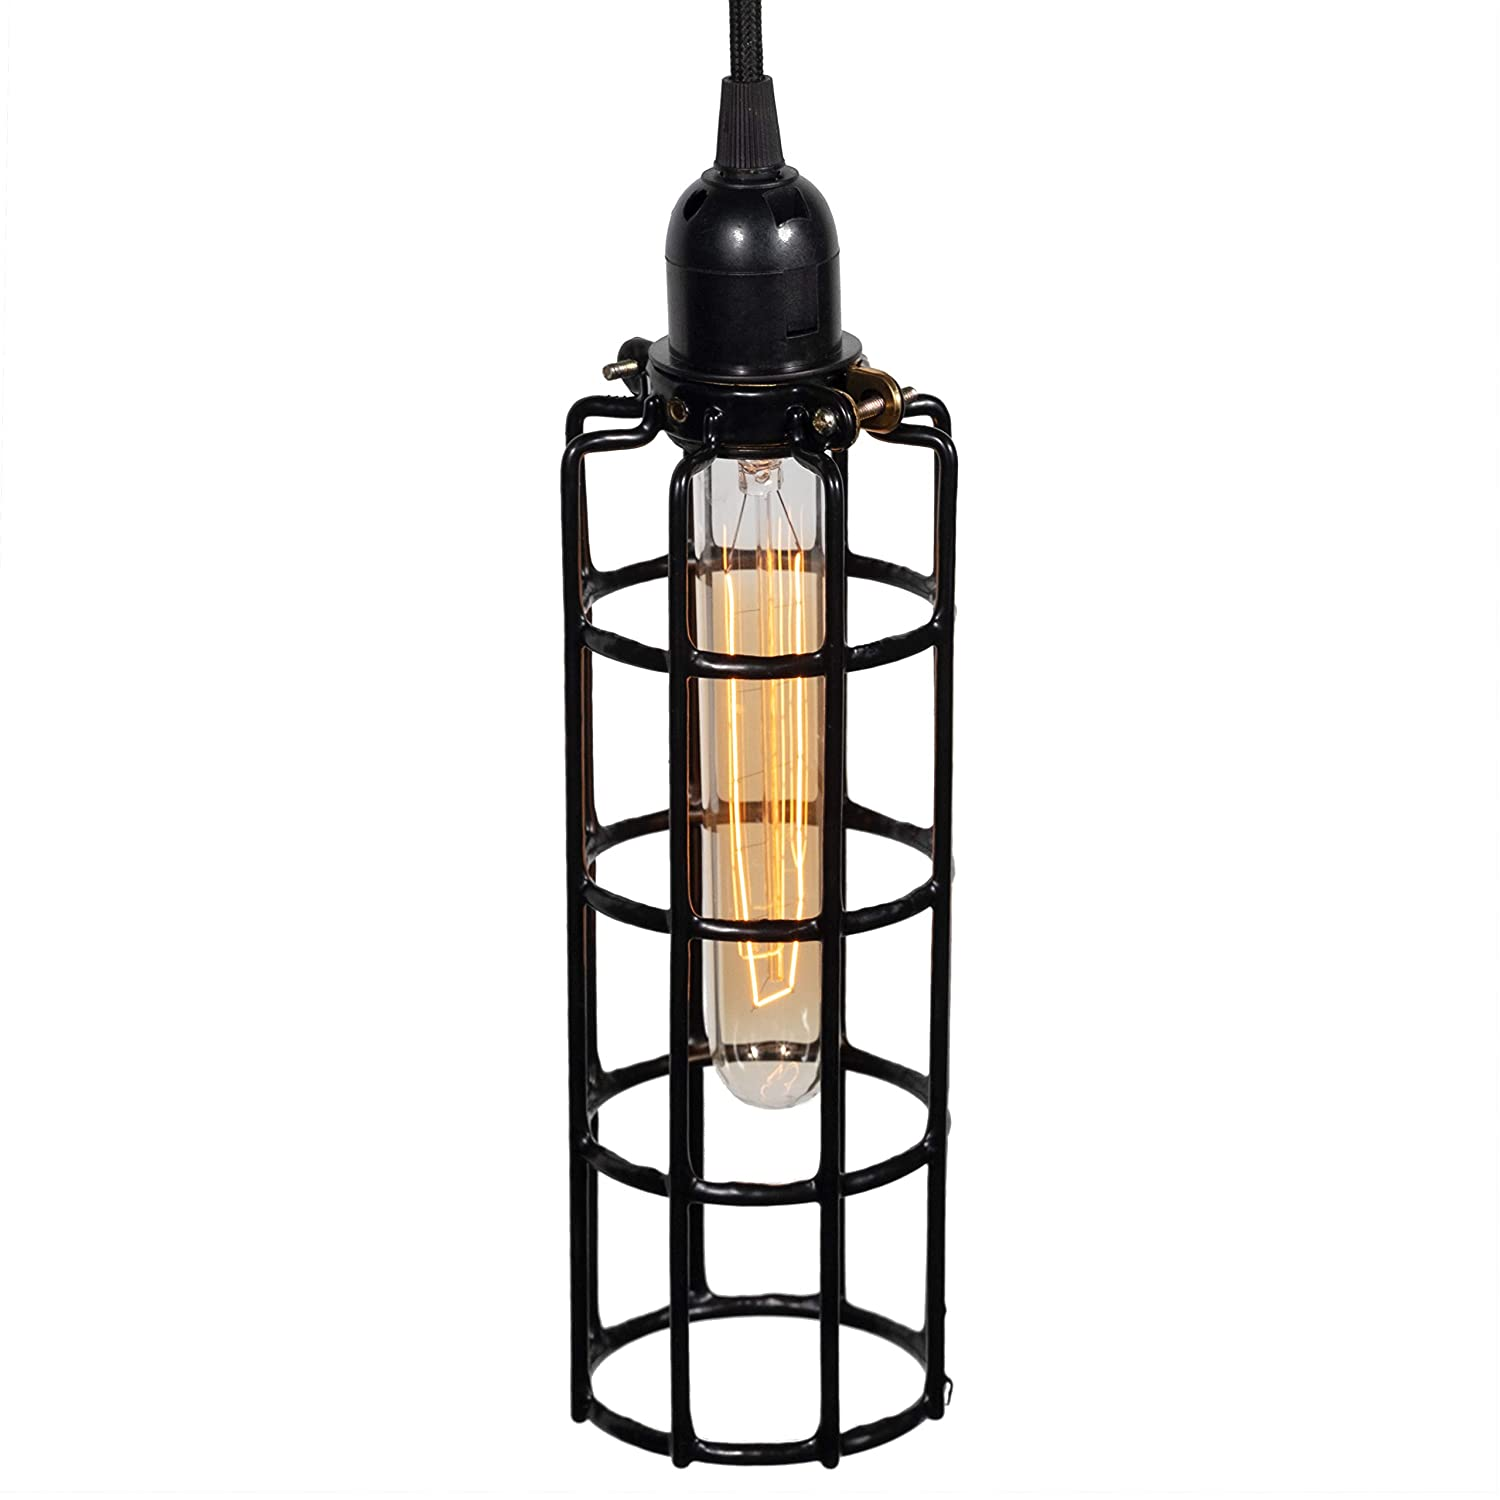 Rustic state long cylinder metal wire light cage guard for pendant lamps diy lighting fixtures black amazon com